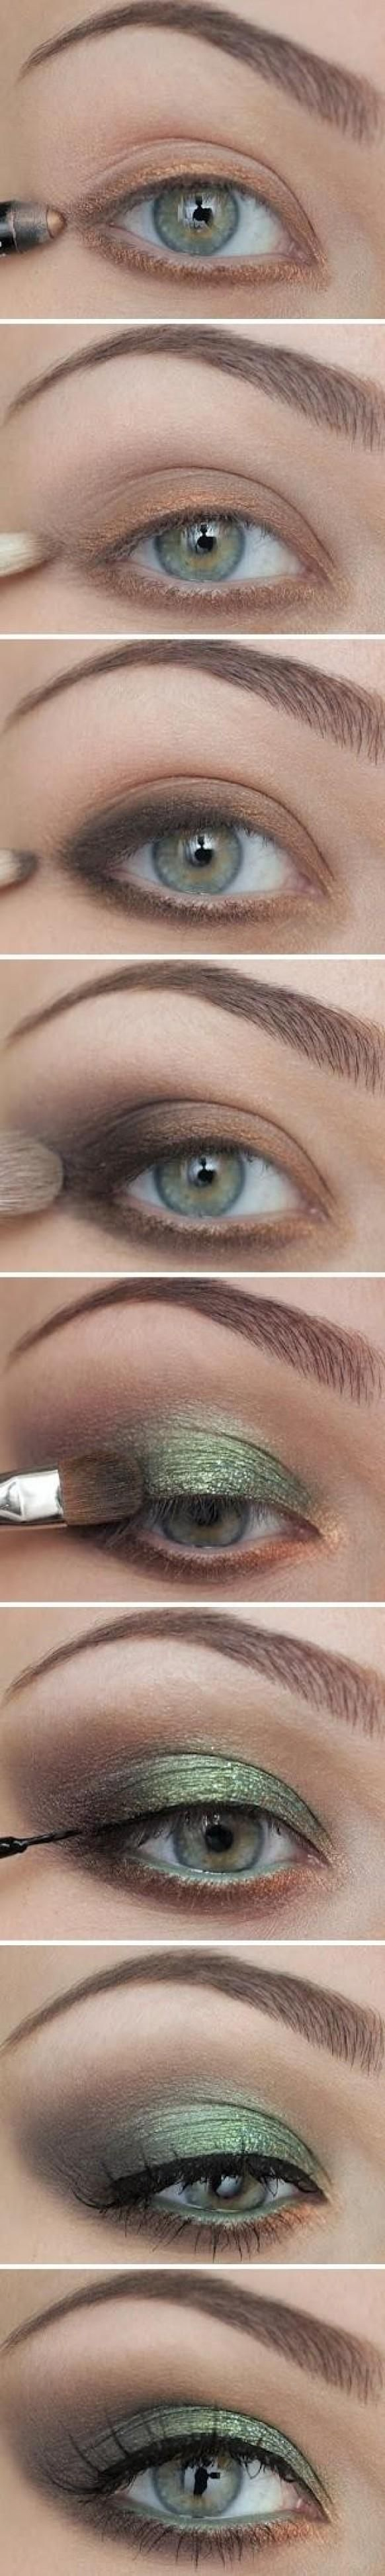 Weddbook is a content discovery engine mostly specialized on wedding concept. You can collect images, videos or articles you discovered organize them, add your own ideas to your collections and share with other people - Weddbook ♥ Green Smokey Eye Makeup. Eye makeup for green eyes. Smokey Eye Makeup Photo Tutorial. Best Bridal Makeup smokey green #smokey #green